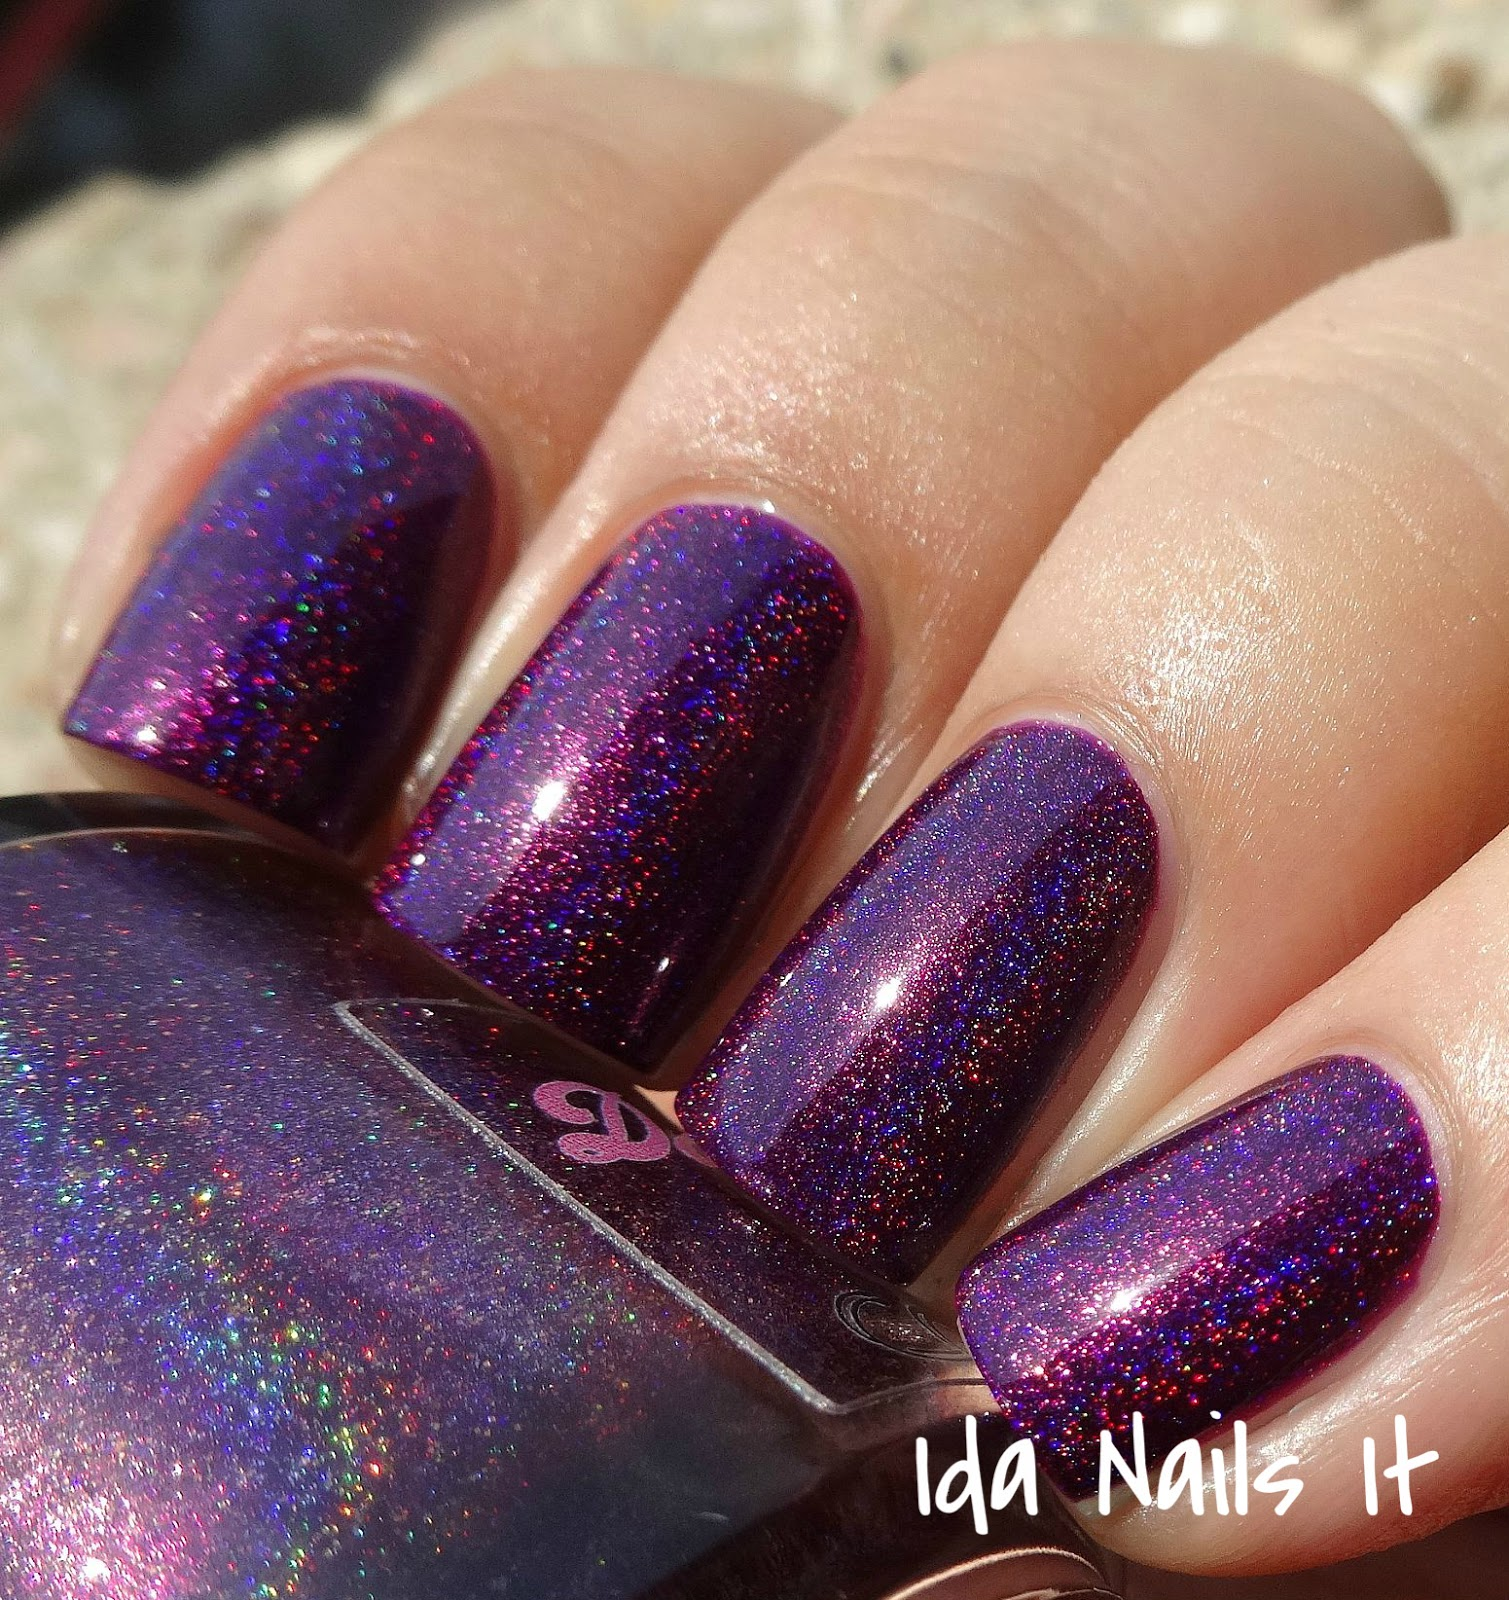 L B K Nail Lacquers Are Unique And Beautiful Giveaway: Ida Nails It: Darling Diva Polish Hug My Face Collection